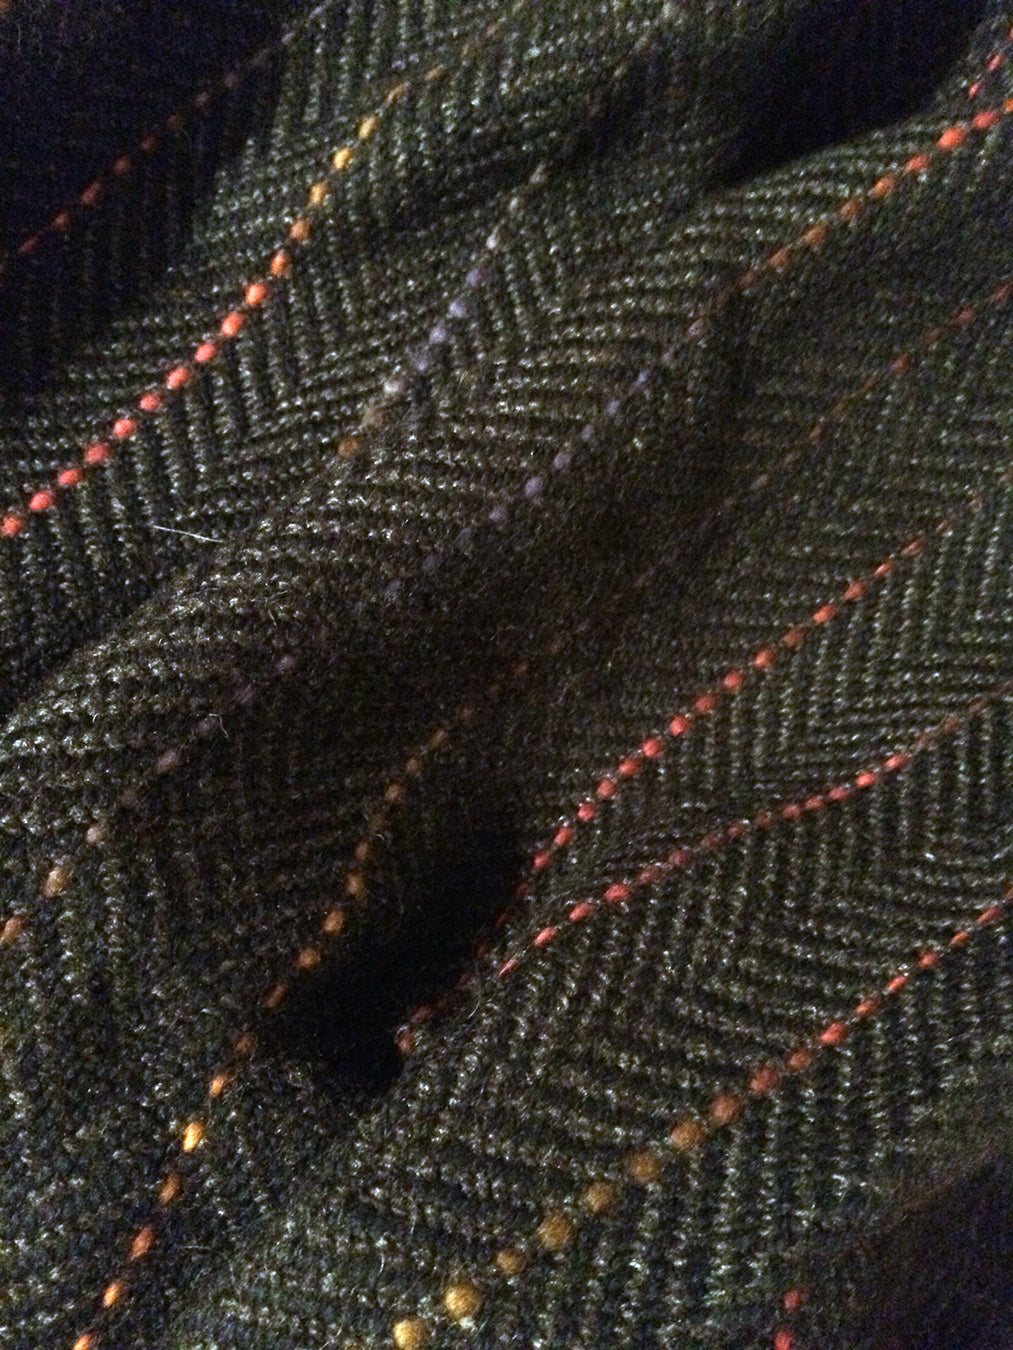 Lap Blanket (Charcoal Gray/Black, with multicoloured pin-stripes)